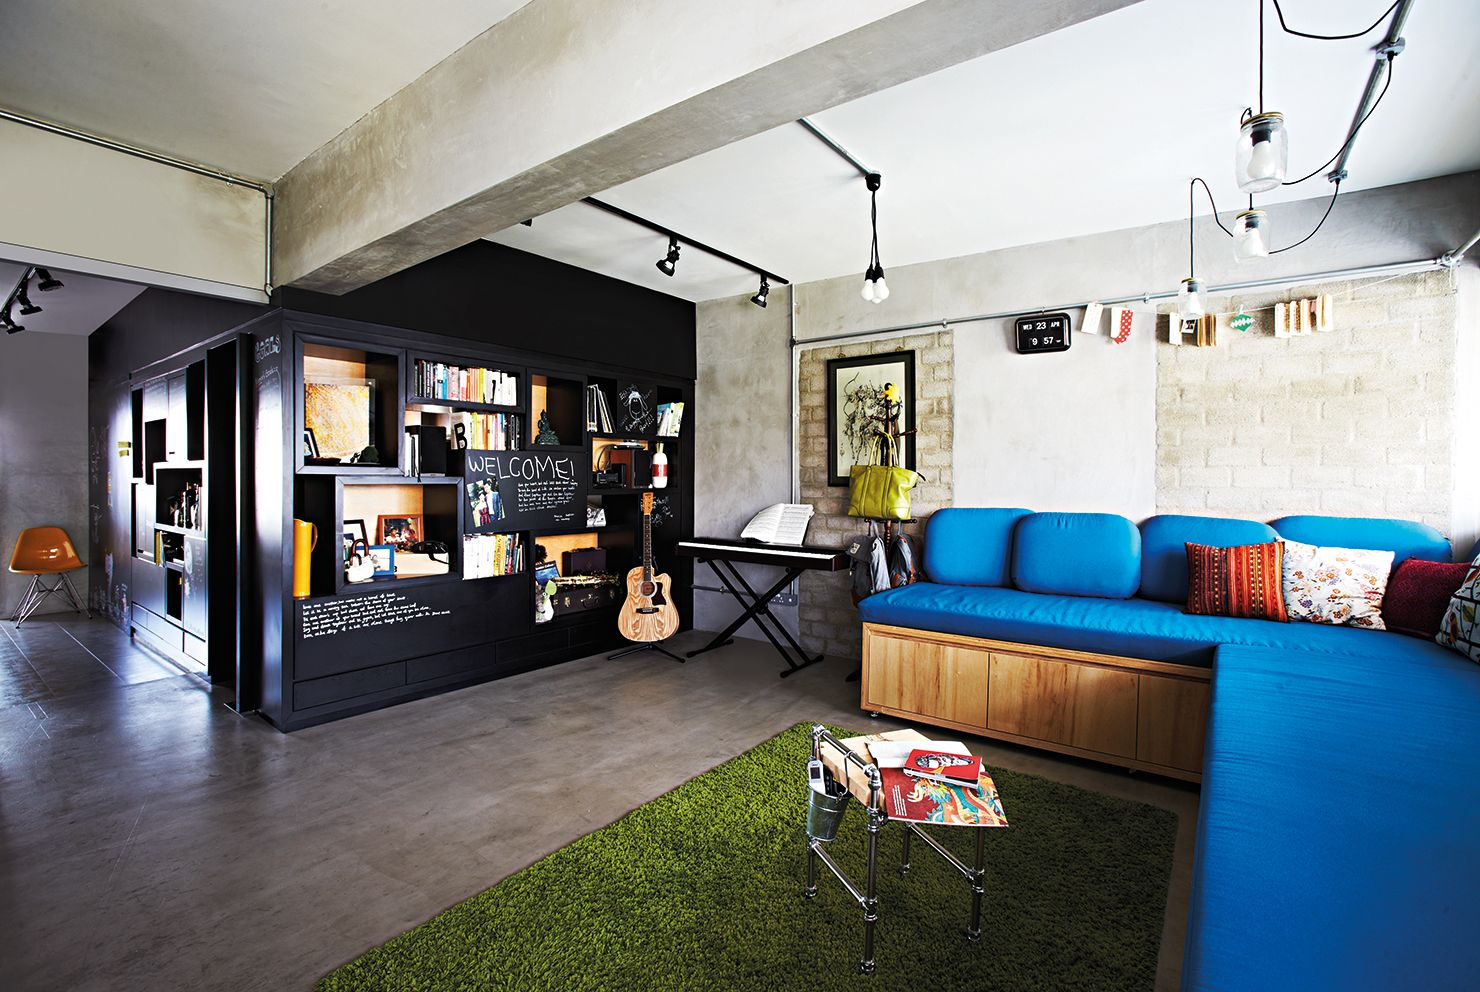 Hdb Home Decor Ideas Part - 27: An Open-concept Three Room HDB Flat